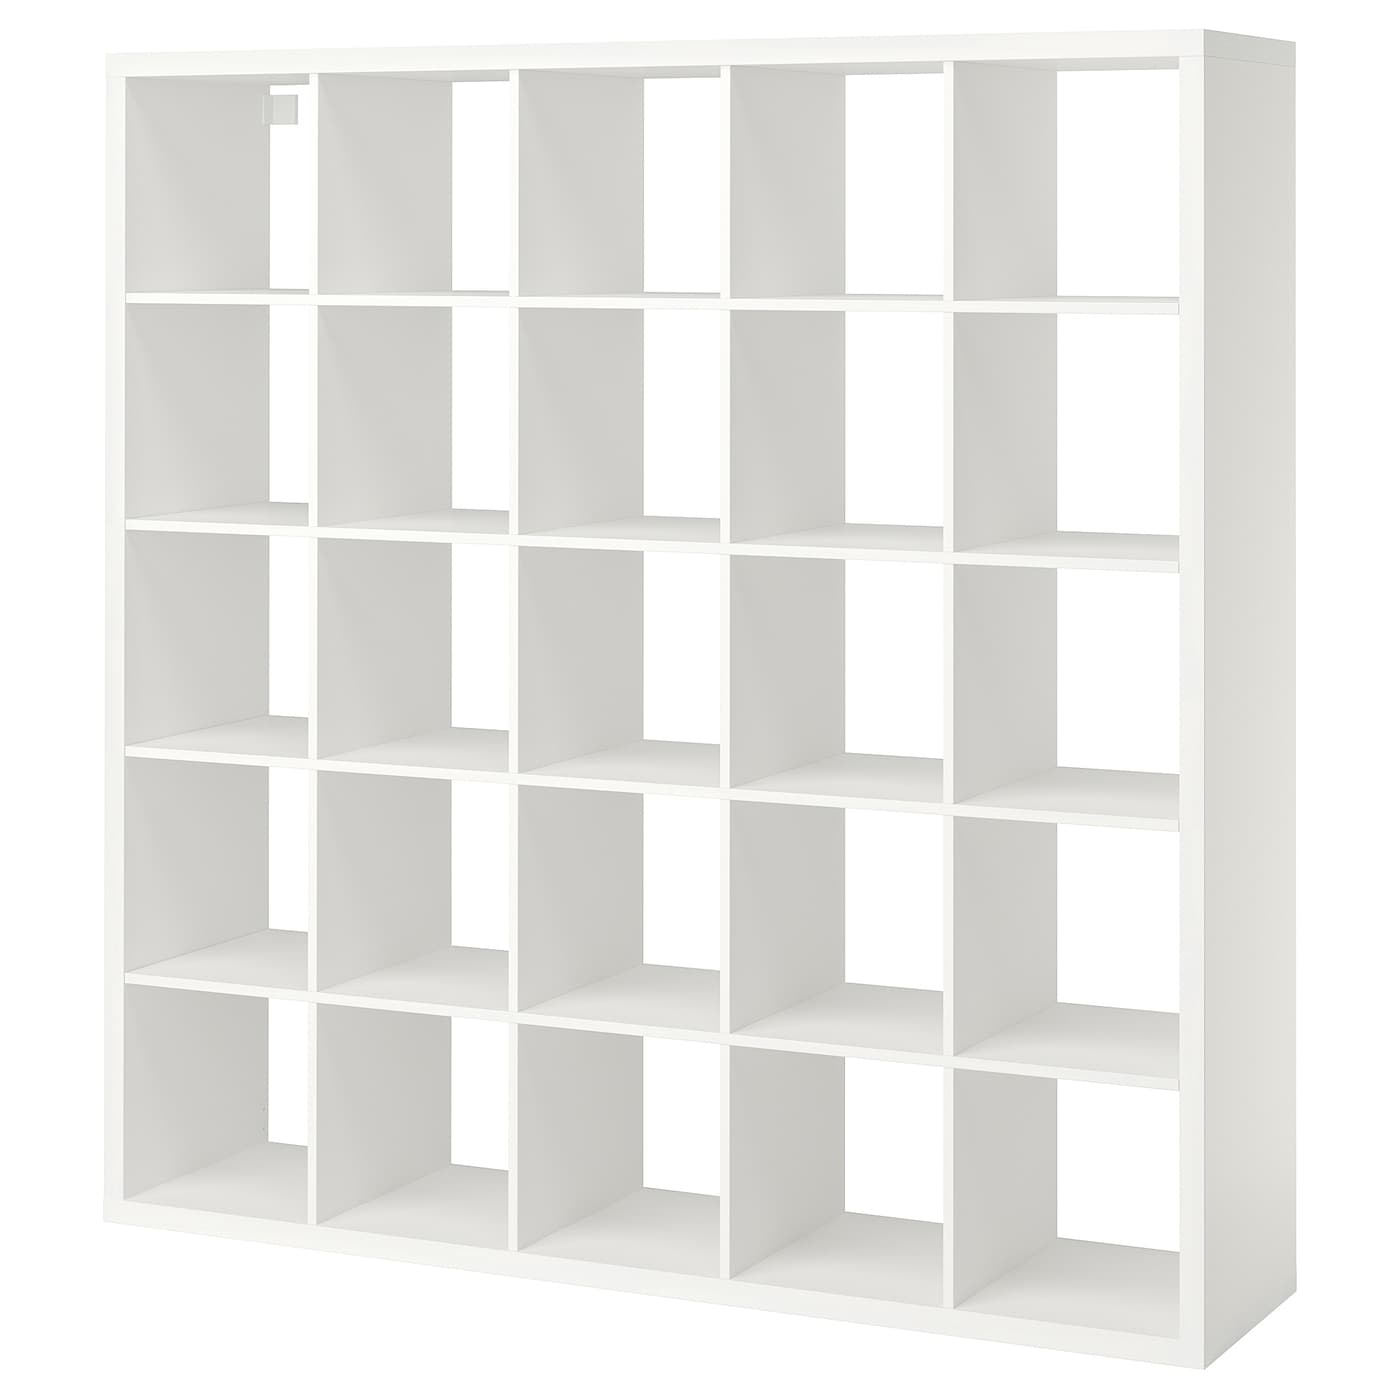 kallax shelving unit white 182 x 182 cm ikea. Black Bedroom Furniture Sets. Home Design Ideas